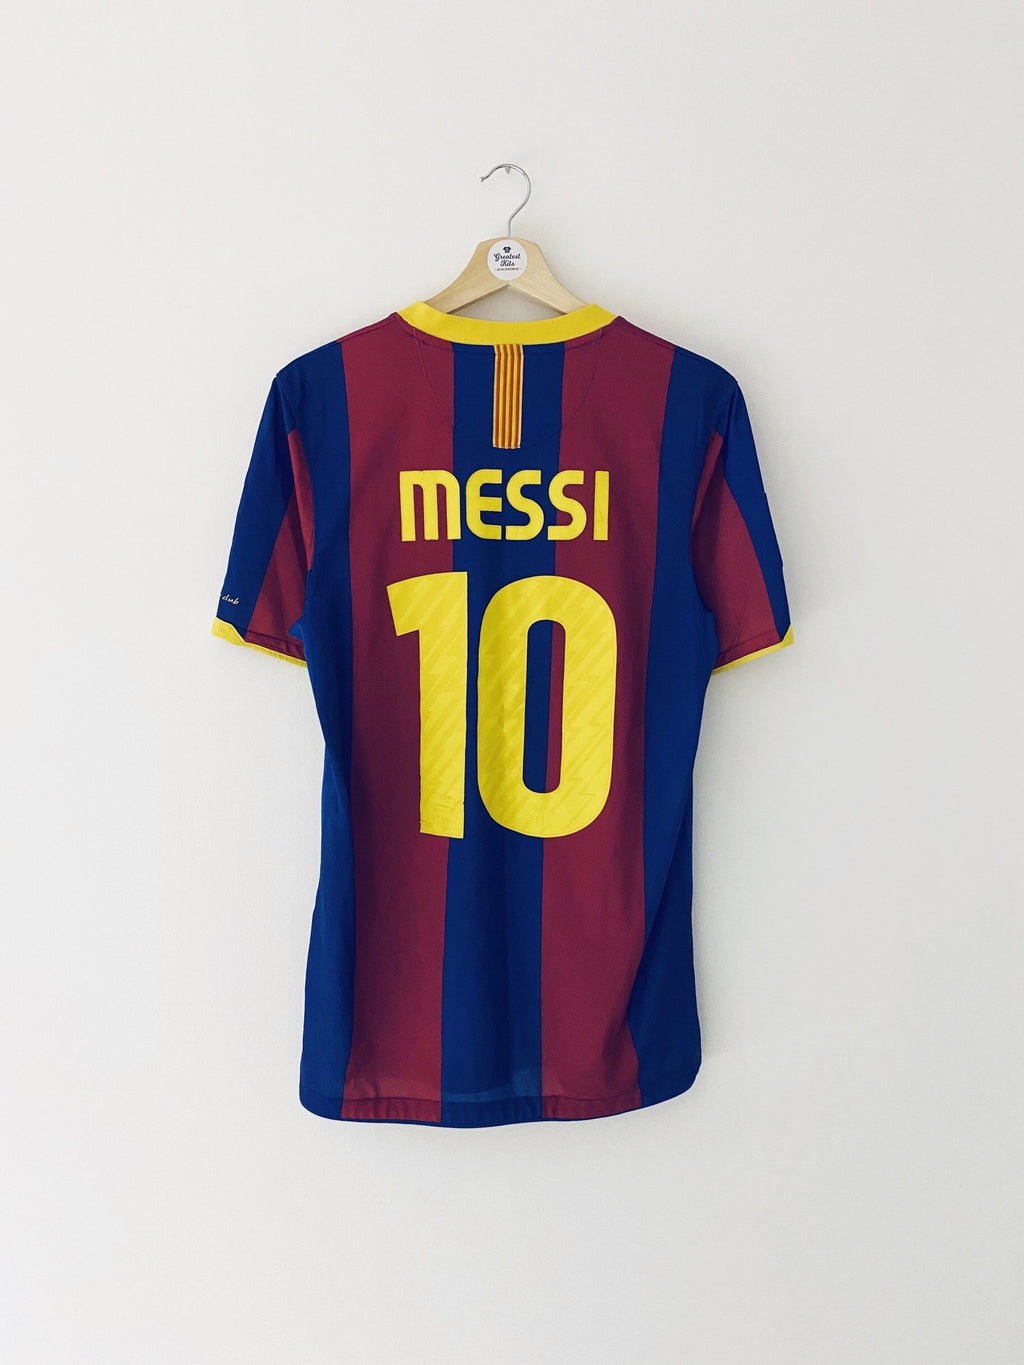 2010/11 Barcelona Home Shirt Messi #10 (S) 8.5/10